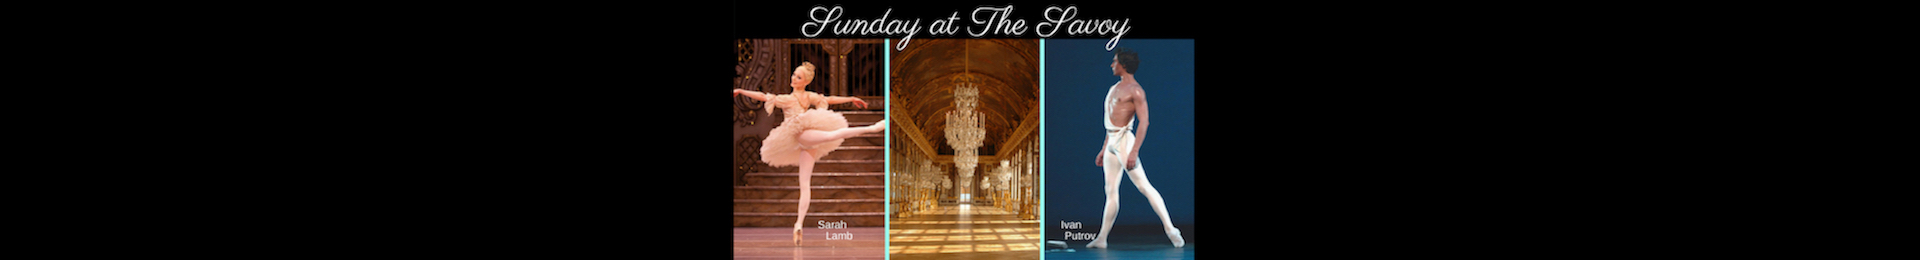 Sunday at The Savoy banner image